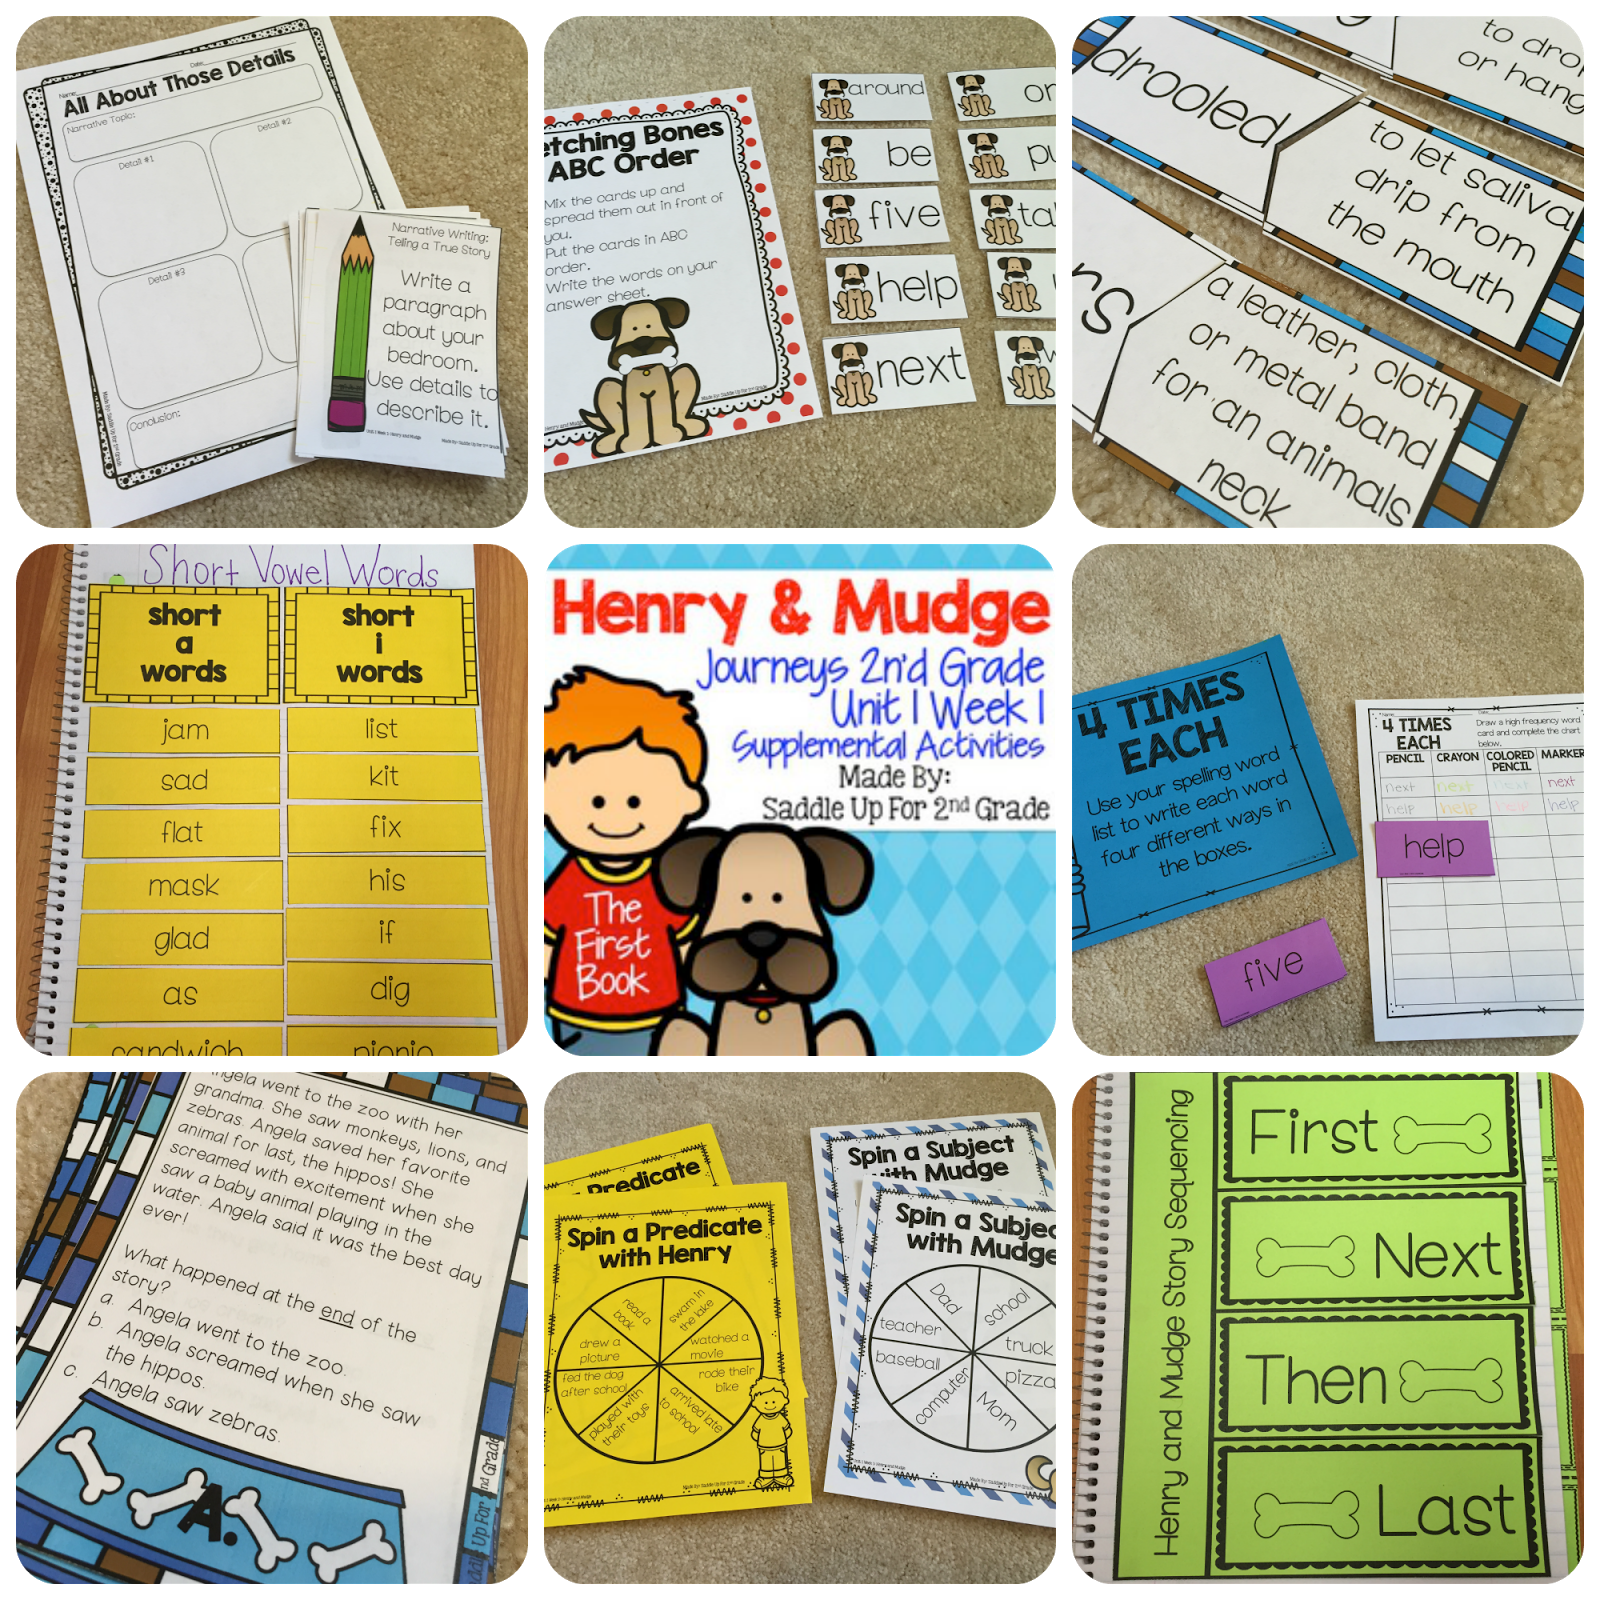 Henry and Mudge Supplemental Activities Journeys 2nd Grade